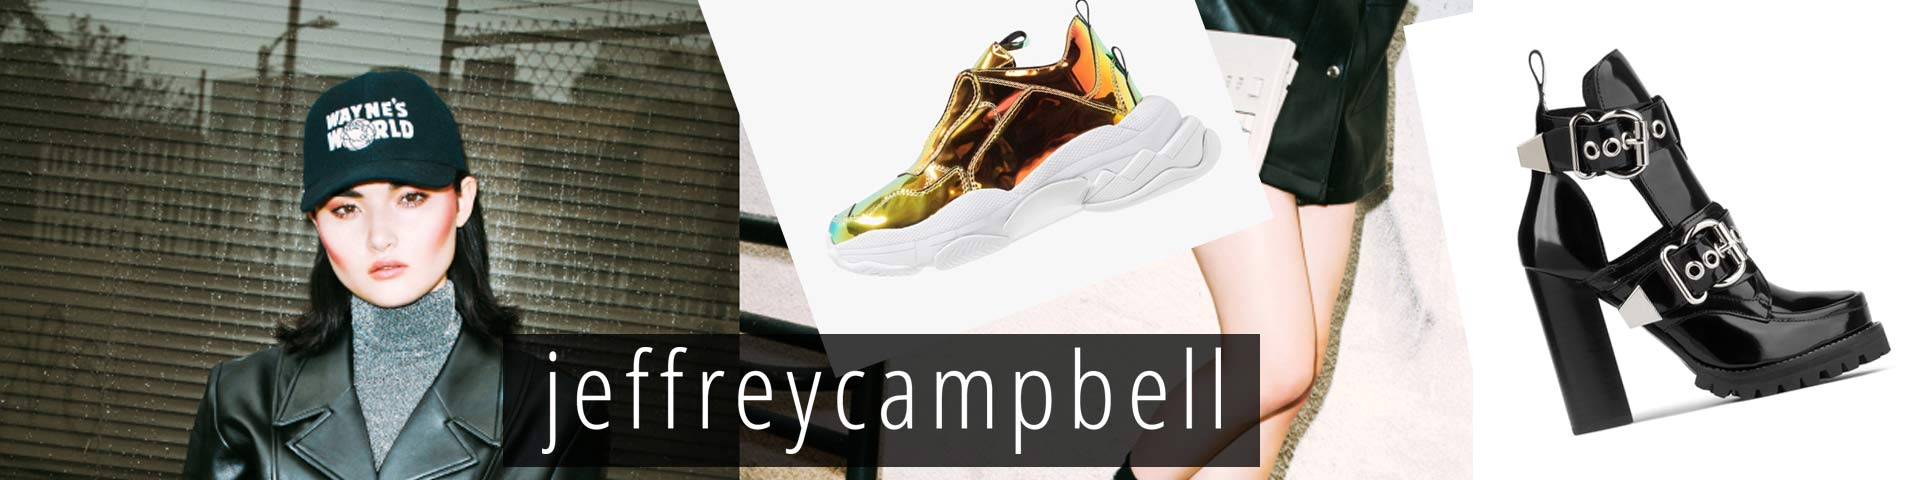 095e4553280 Catalogue from Jeffrey Campbell